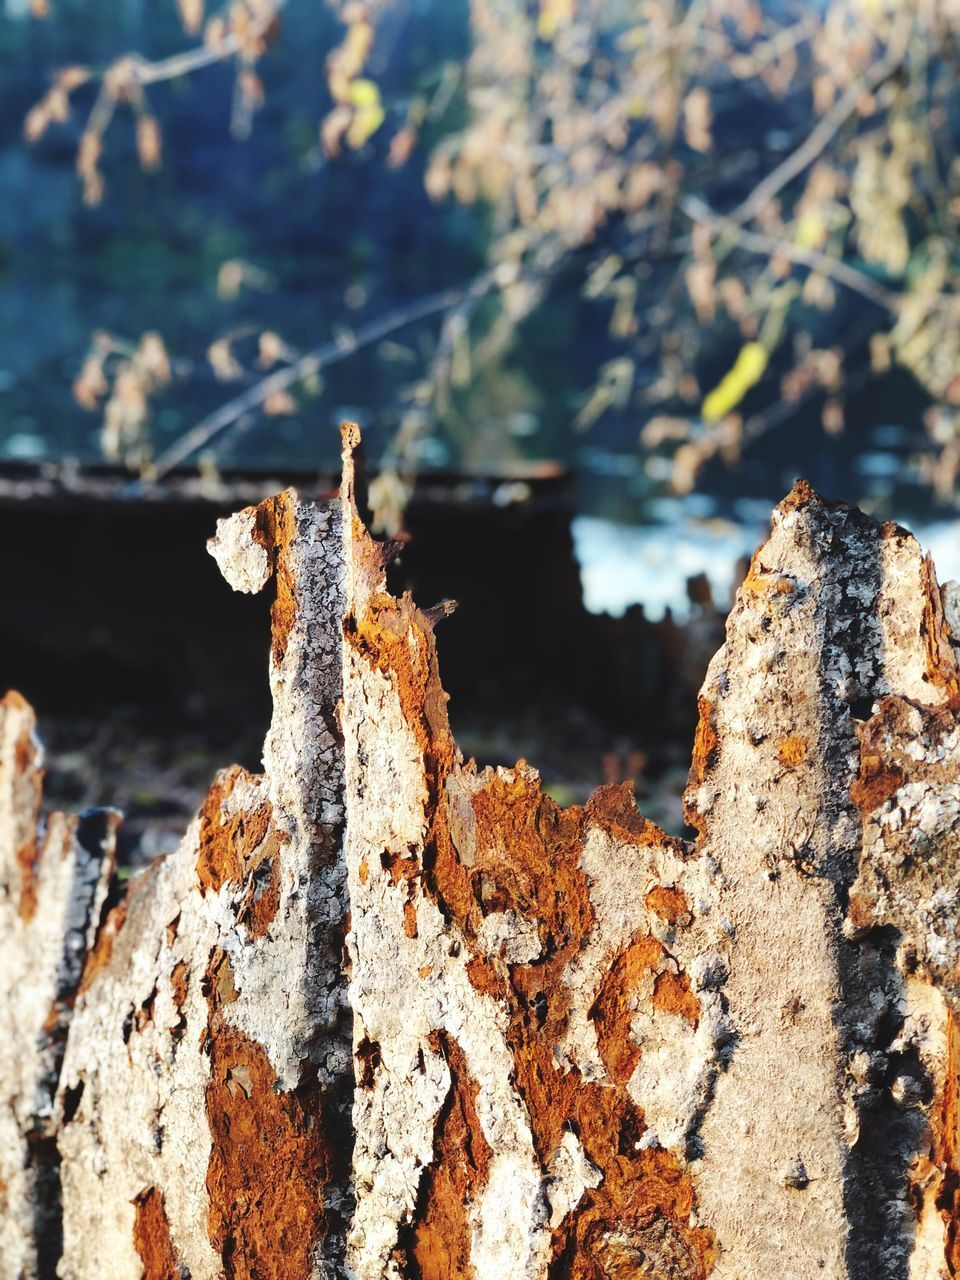 focus on foreground, day, nature, close-up, no people, weathered, rusty, rock, textured, outdoors, rock - object, solid, metal, rough, water, tranquility, wood - material, sunlight, plant, lichen